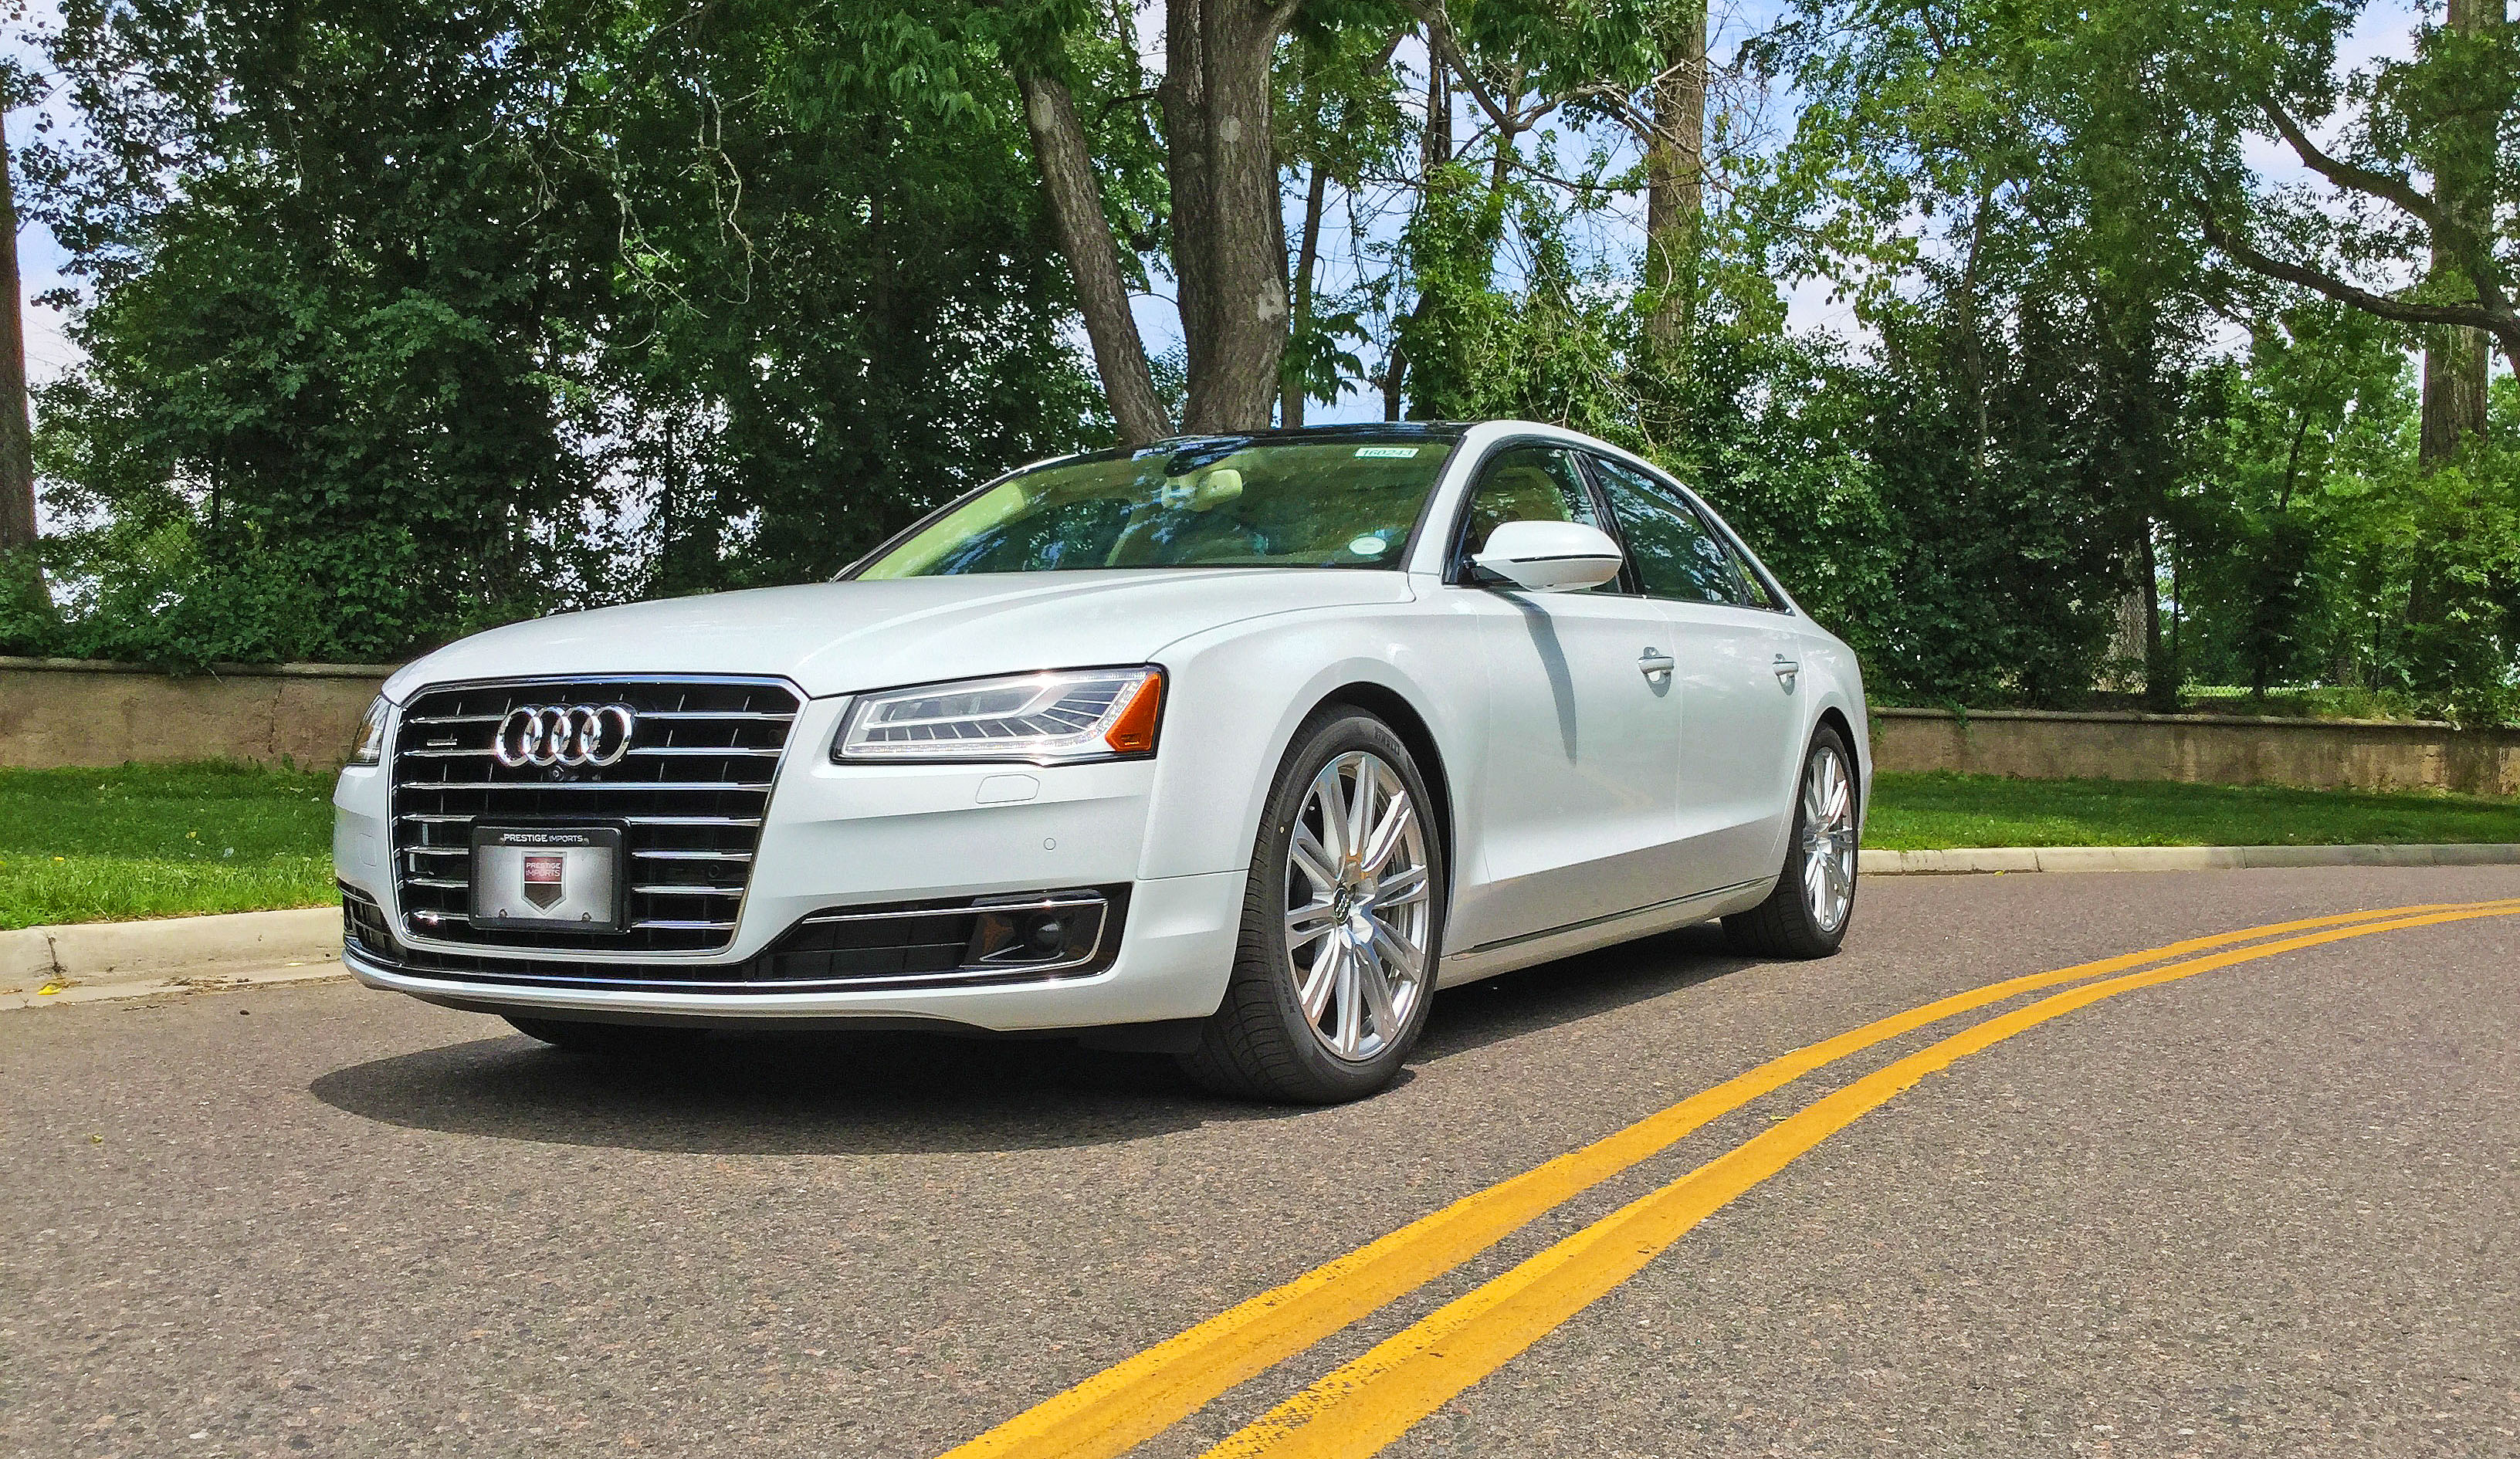 transformation audi l img sale detailing professional for review roadshow